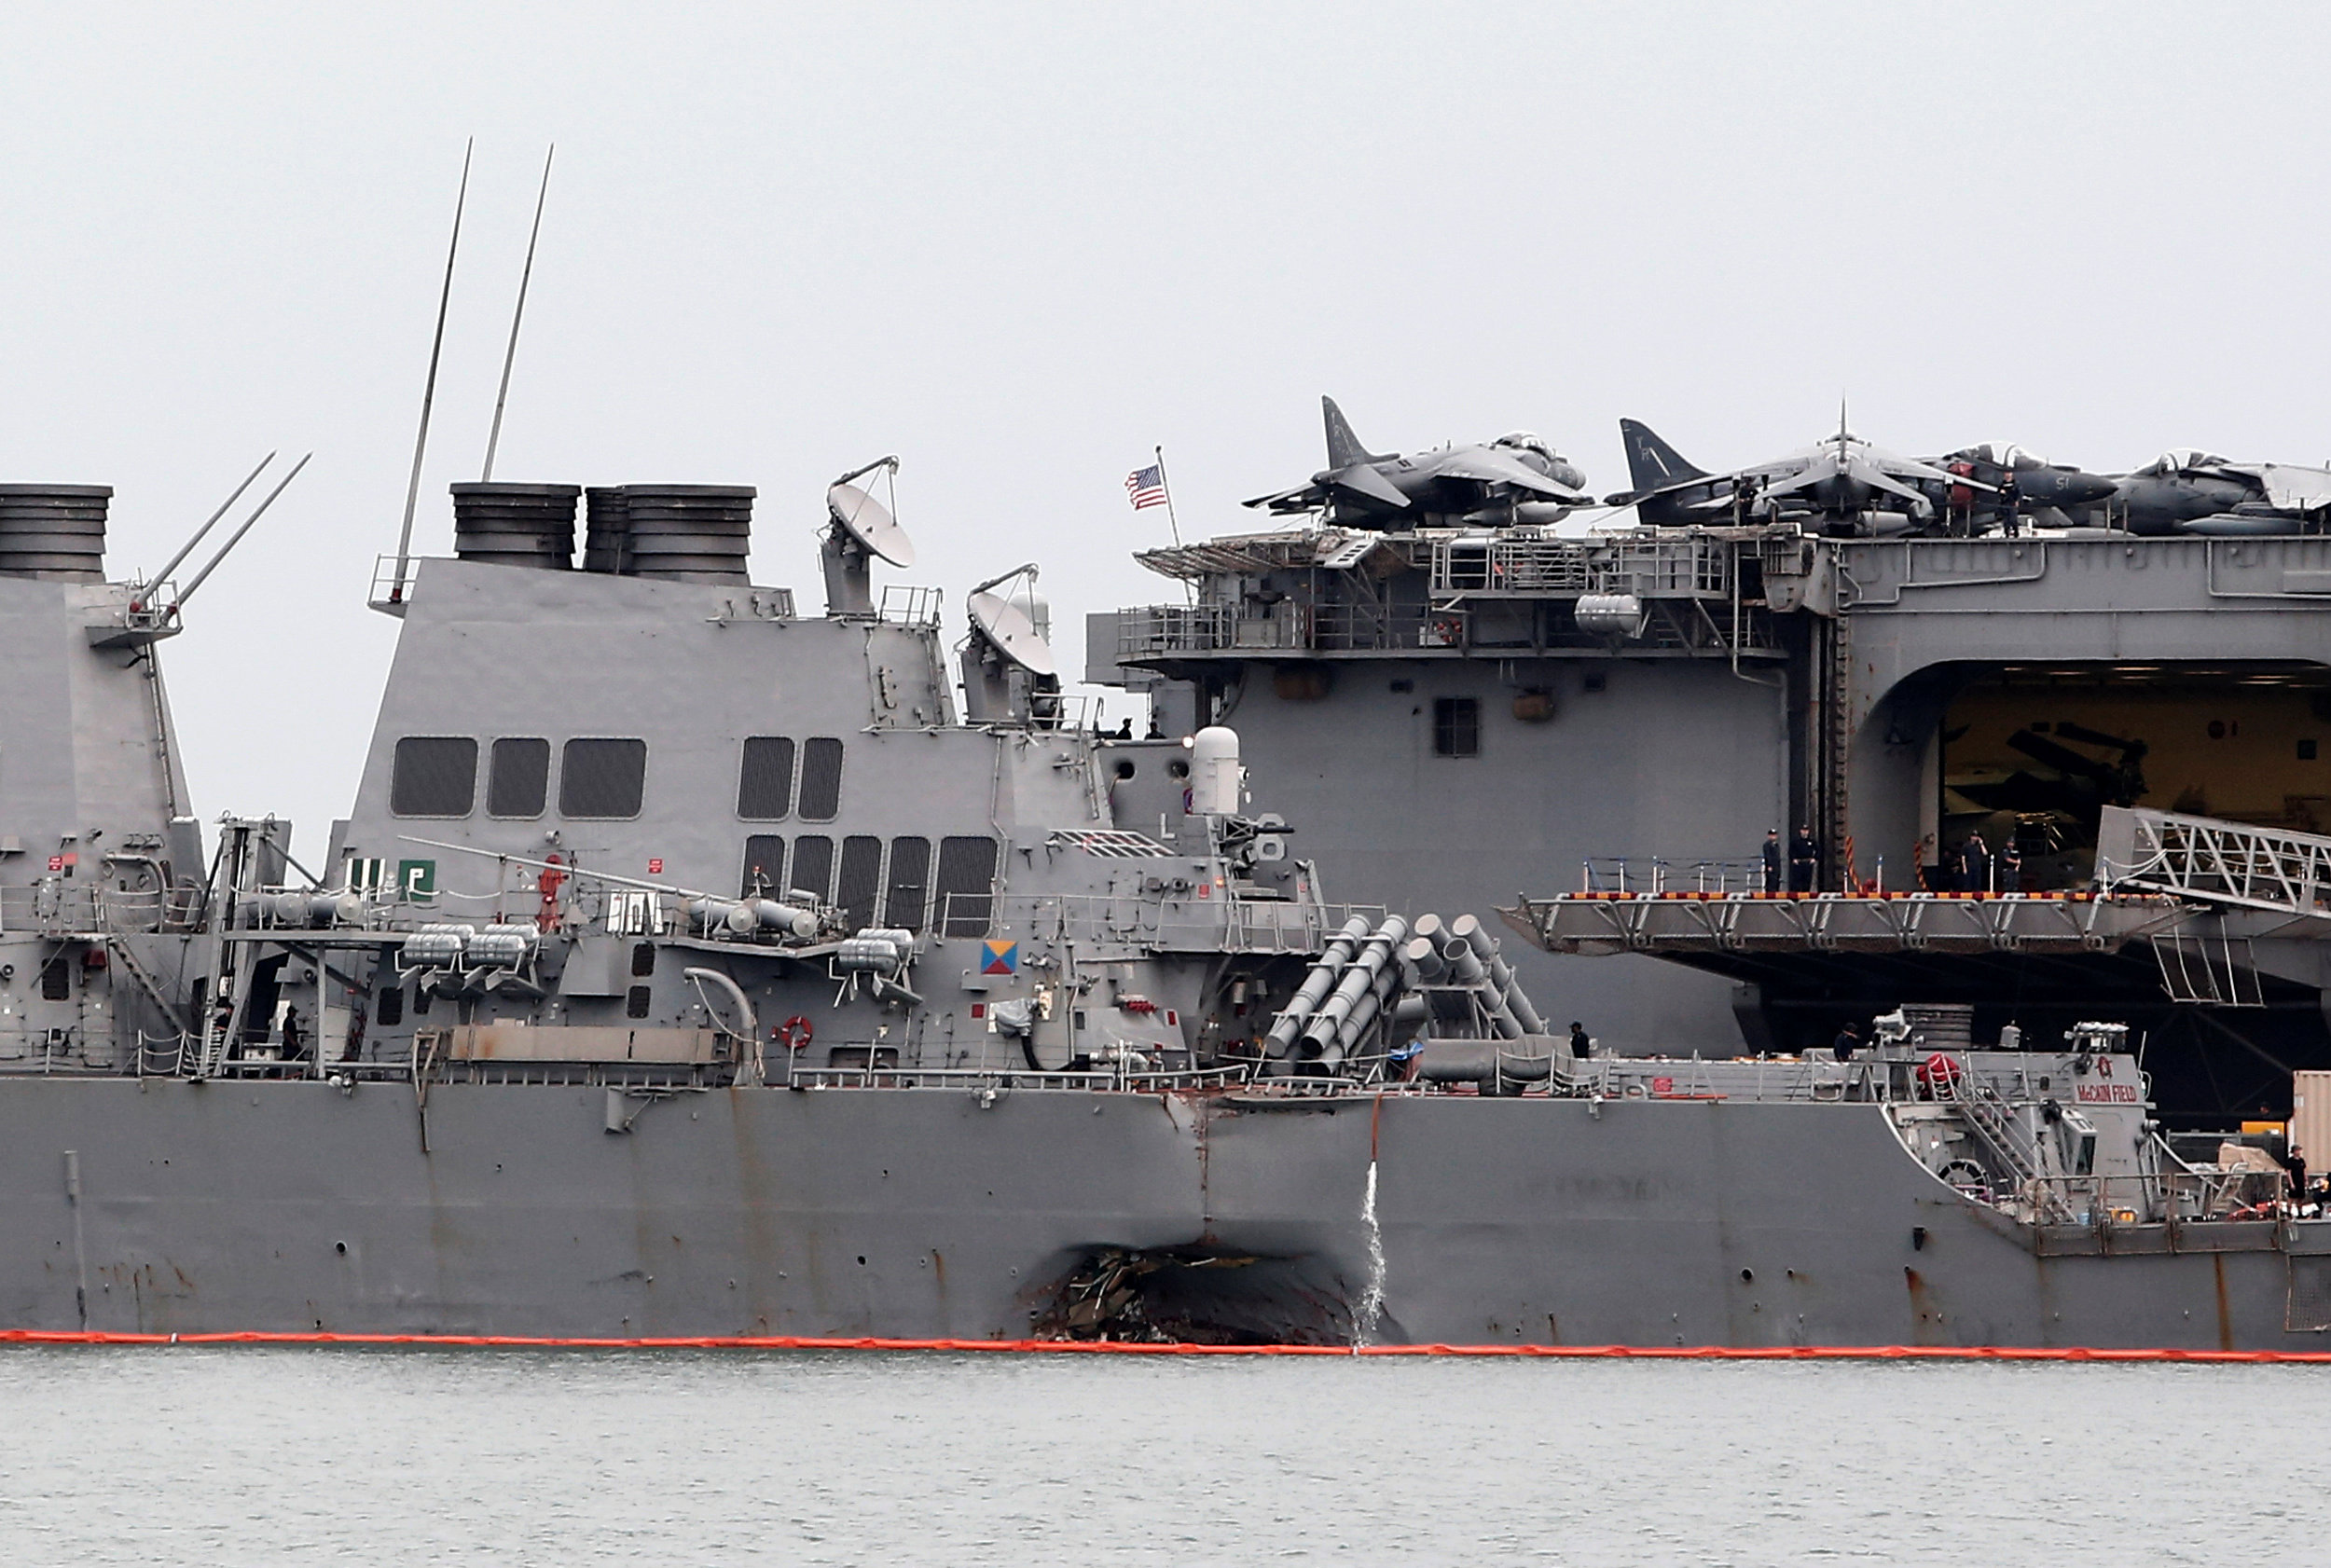 The damaged USS John McCain is docked next to USS America at Changi Naval Base in Singapore August 22, 2017. REUTERS/Calvin Wong